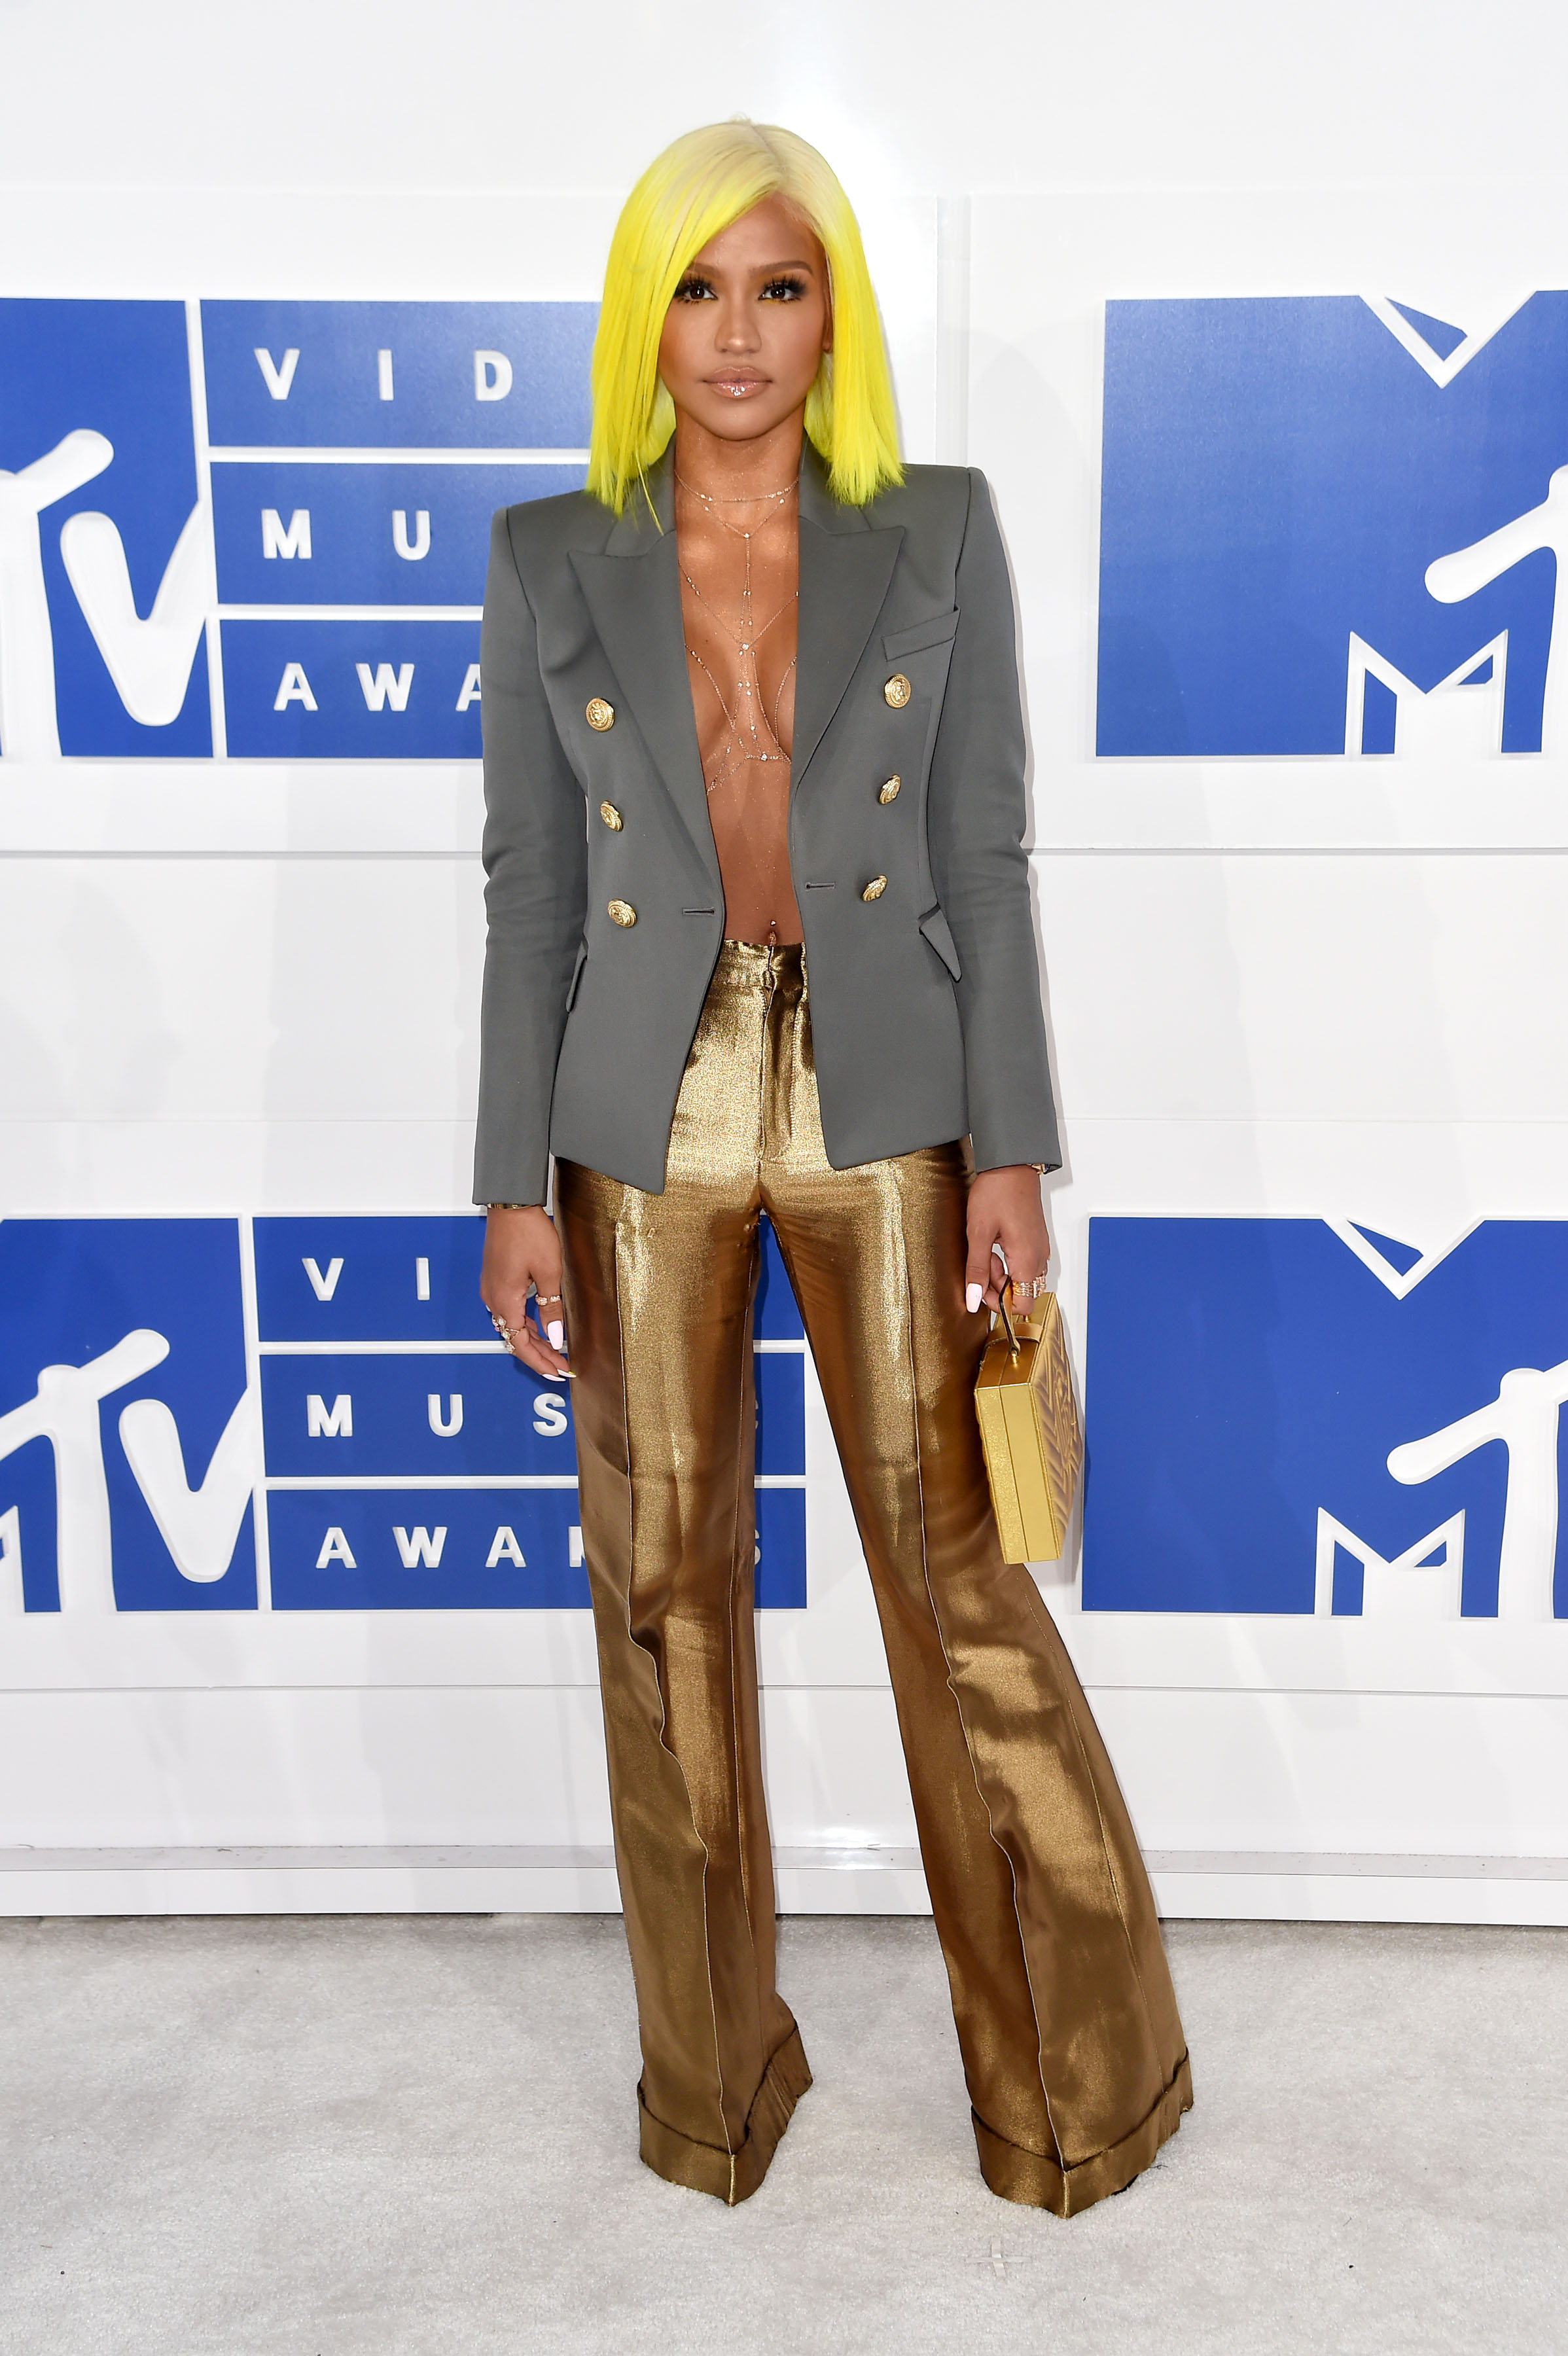 Cassie attends the 2016 MTV Video Music Awards at Madison Square Garden on Aug. 28, 2016 in New York City.